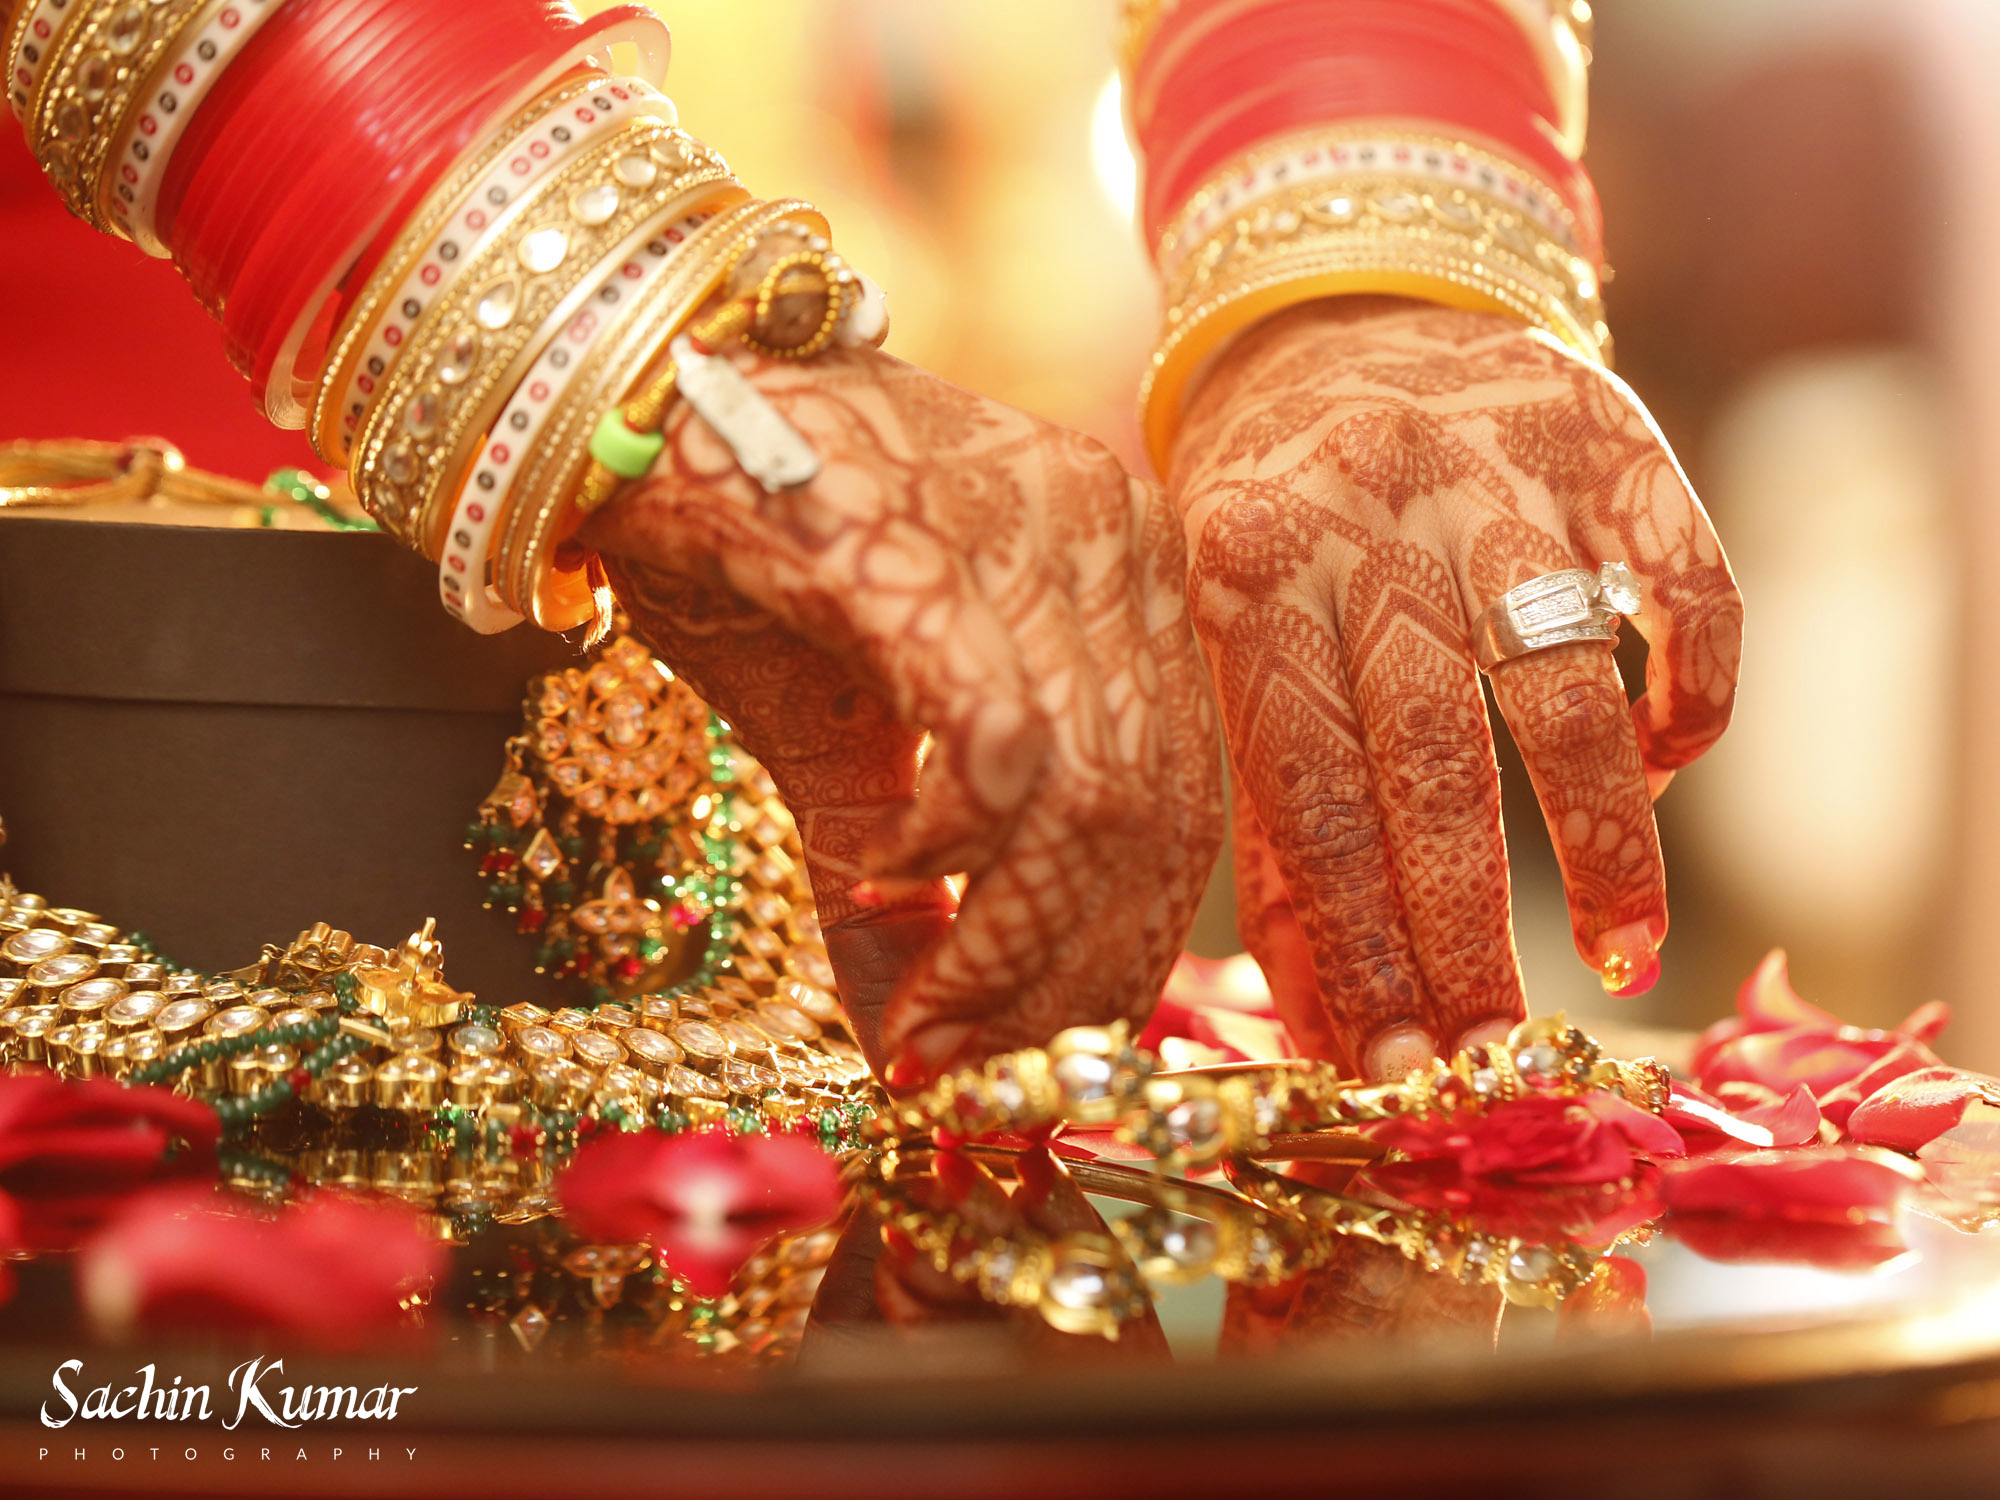 How to Identify a Fake Person on Matrimony Sites?